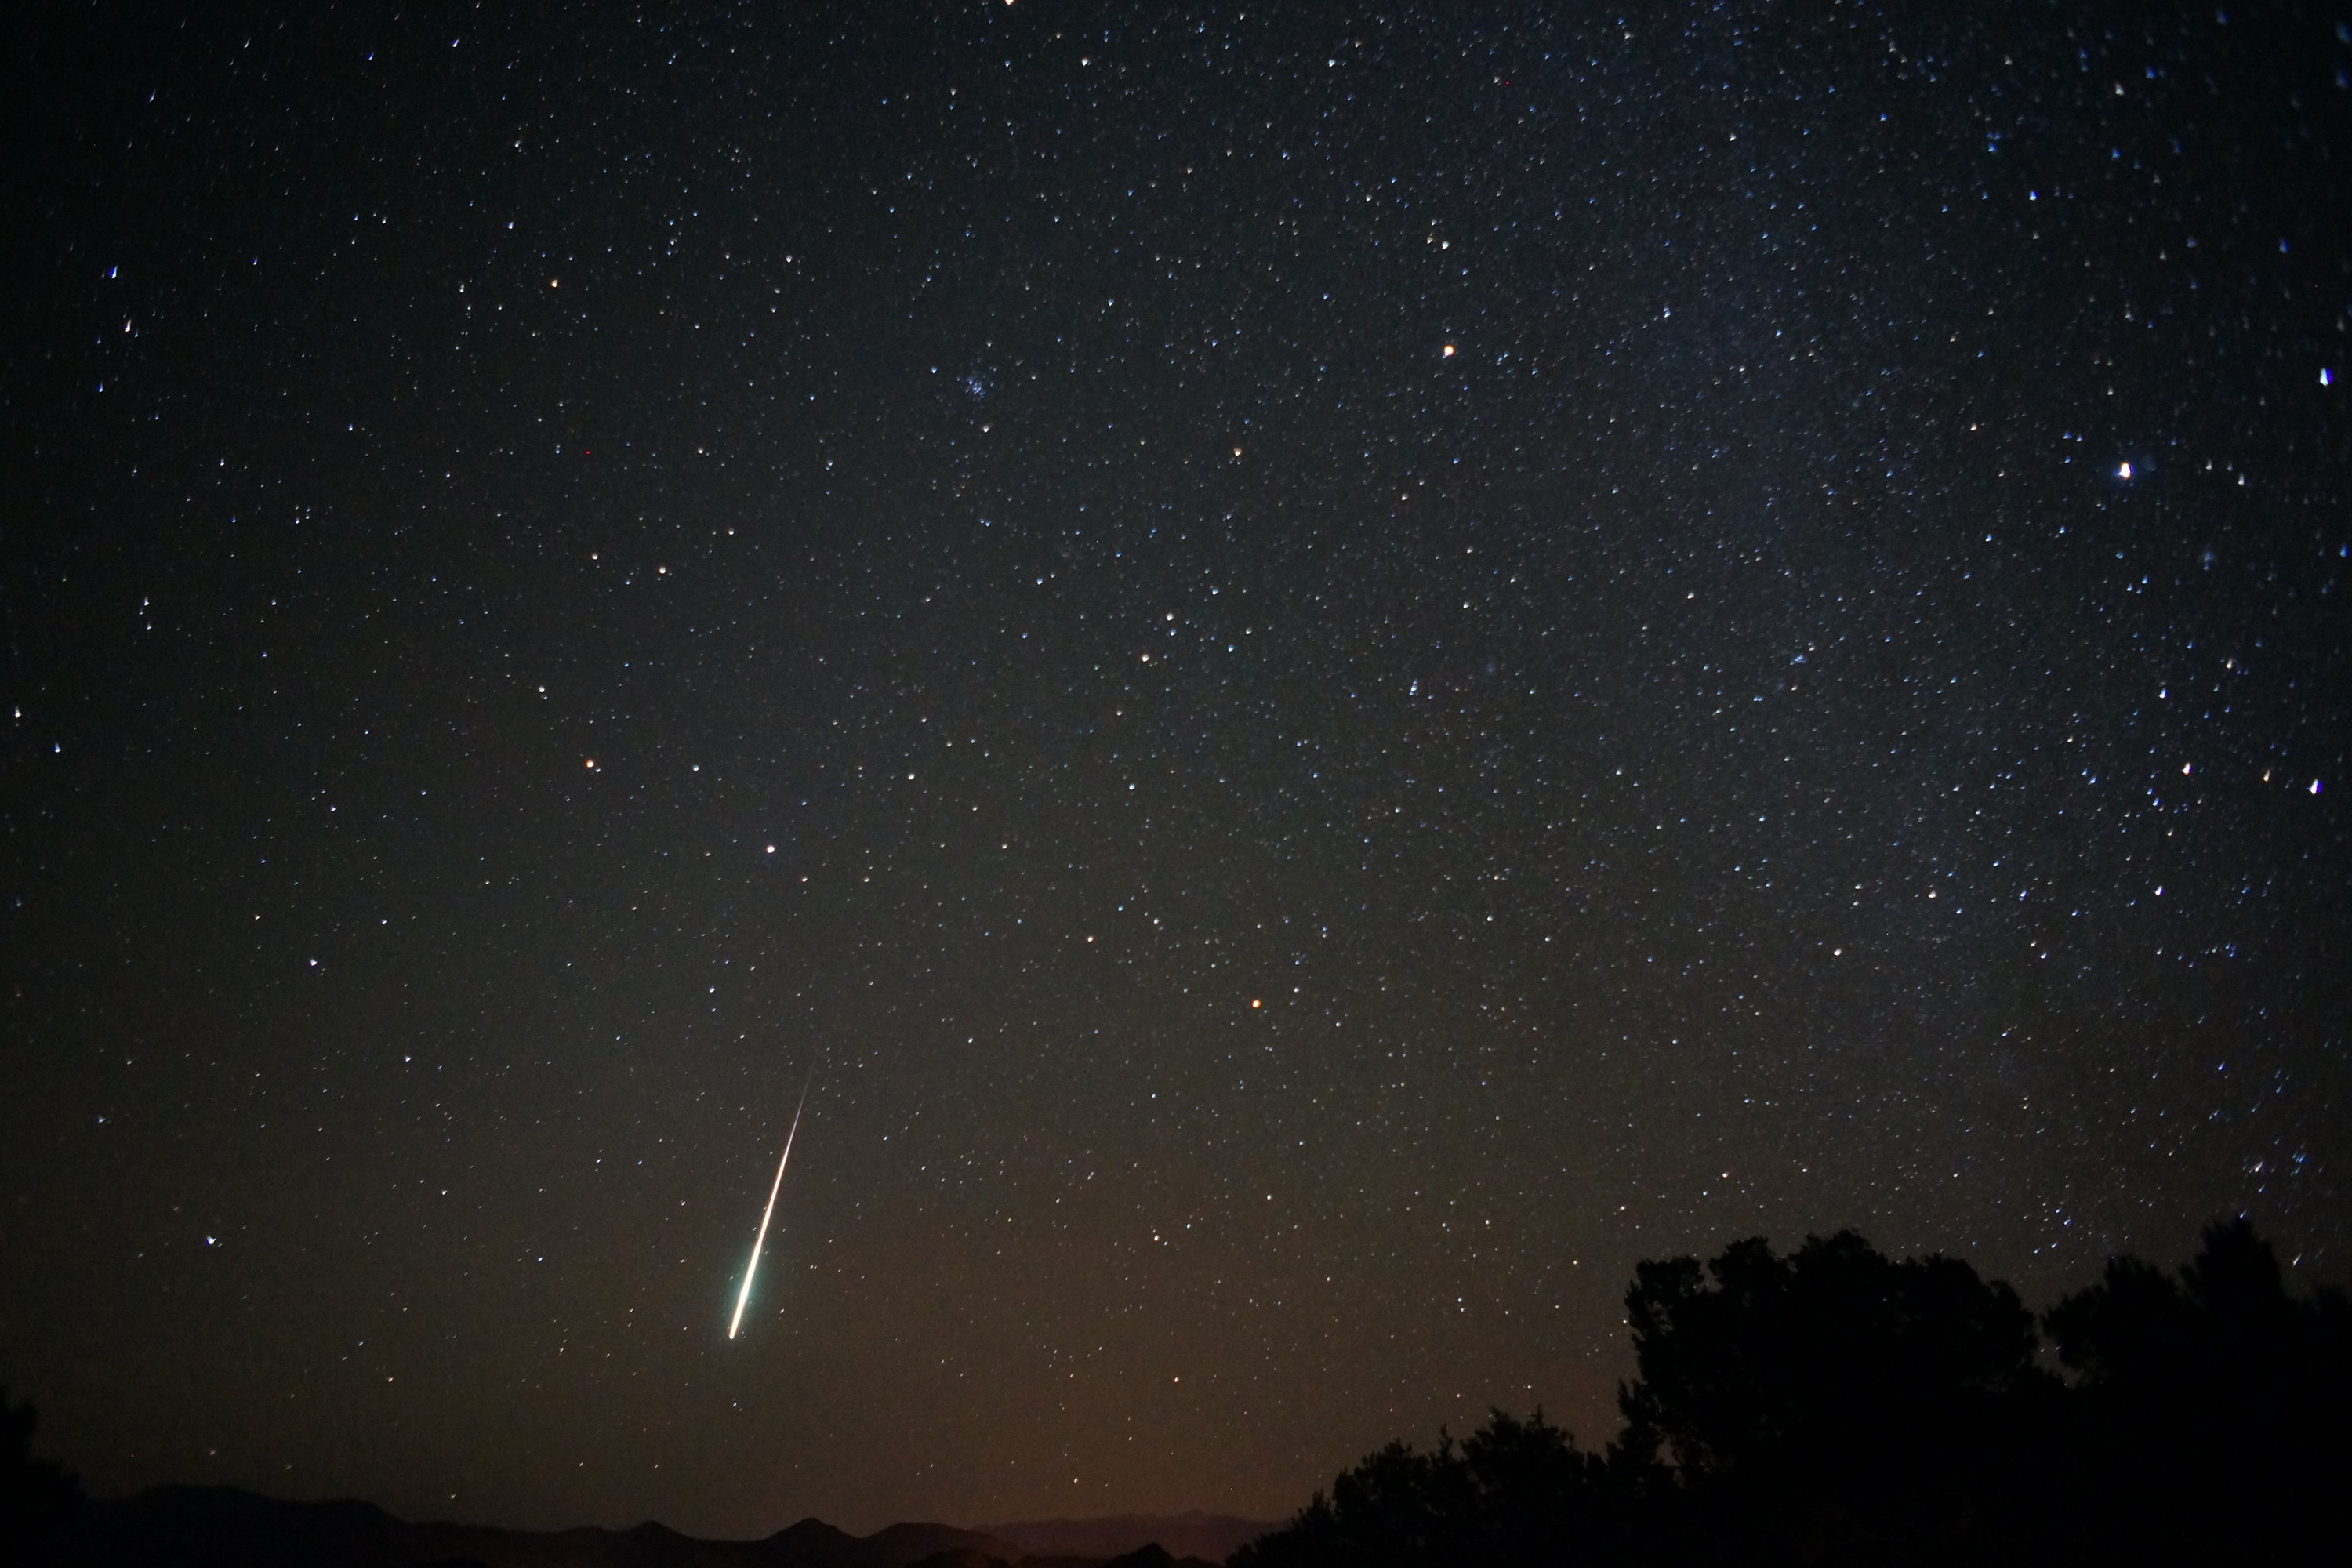 A Taurid meteor shower fireball captured in New Mexico on Nov. 12, 2012.